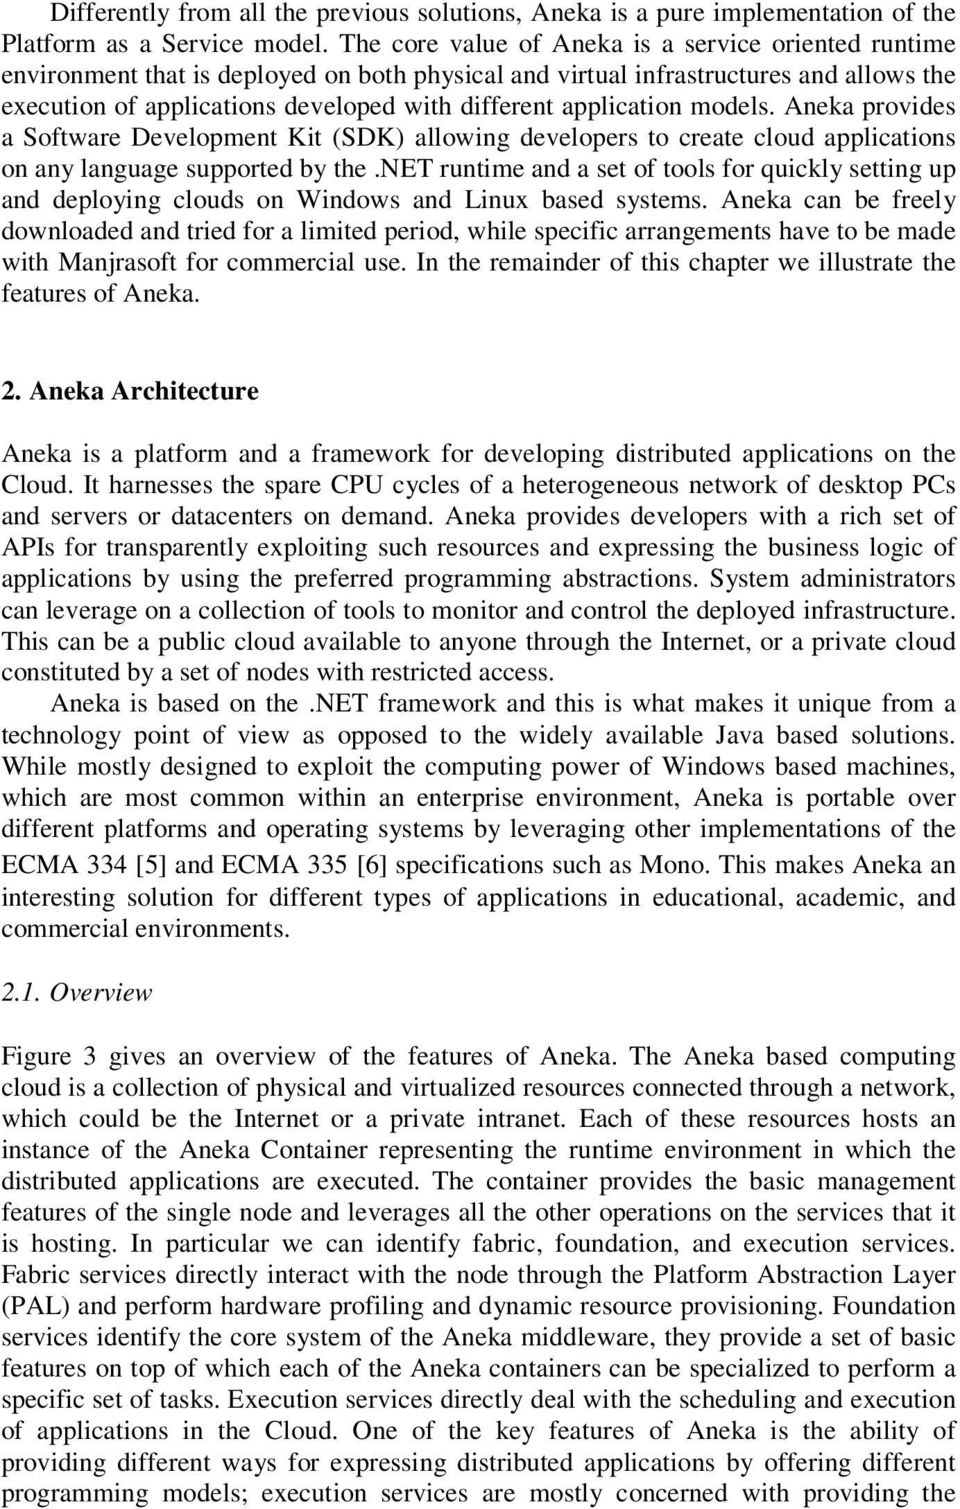 application models. Aneka provides a Software Development Kit (SDK) allowing developers to create cloud applications on any language supported by the.